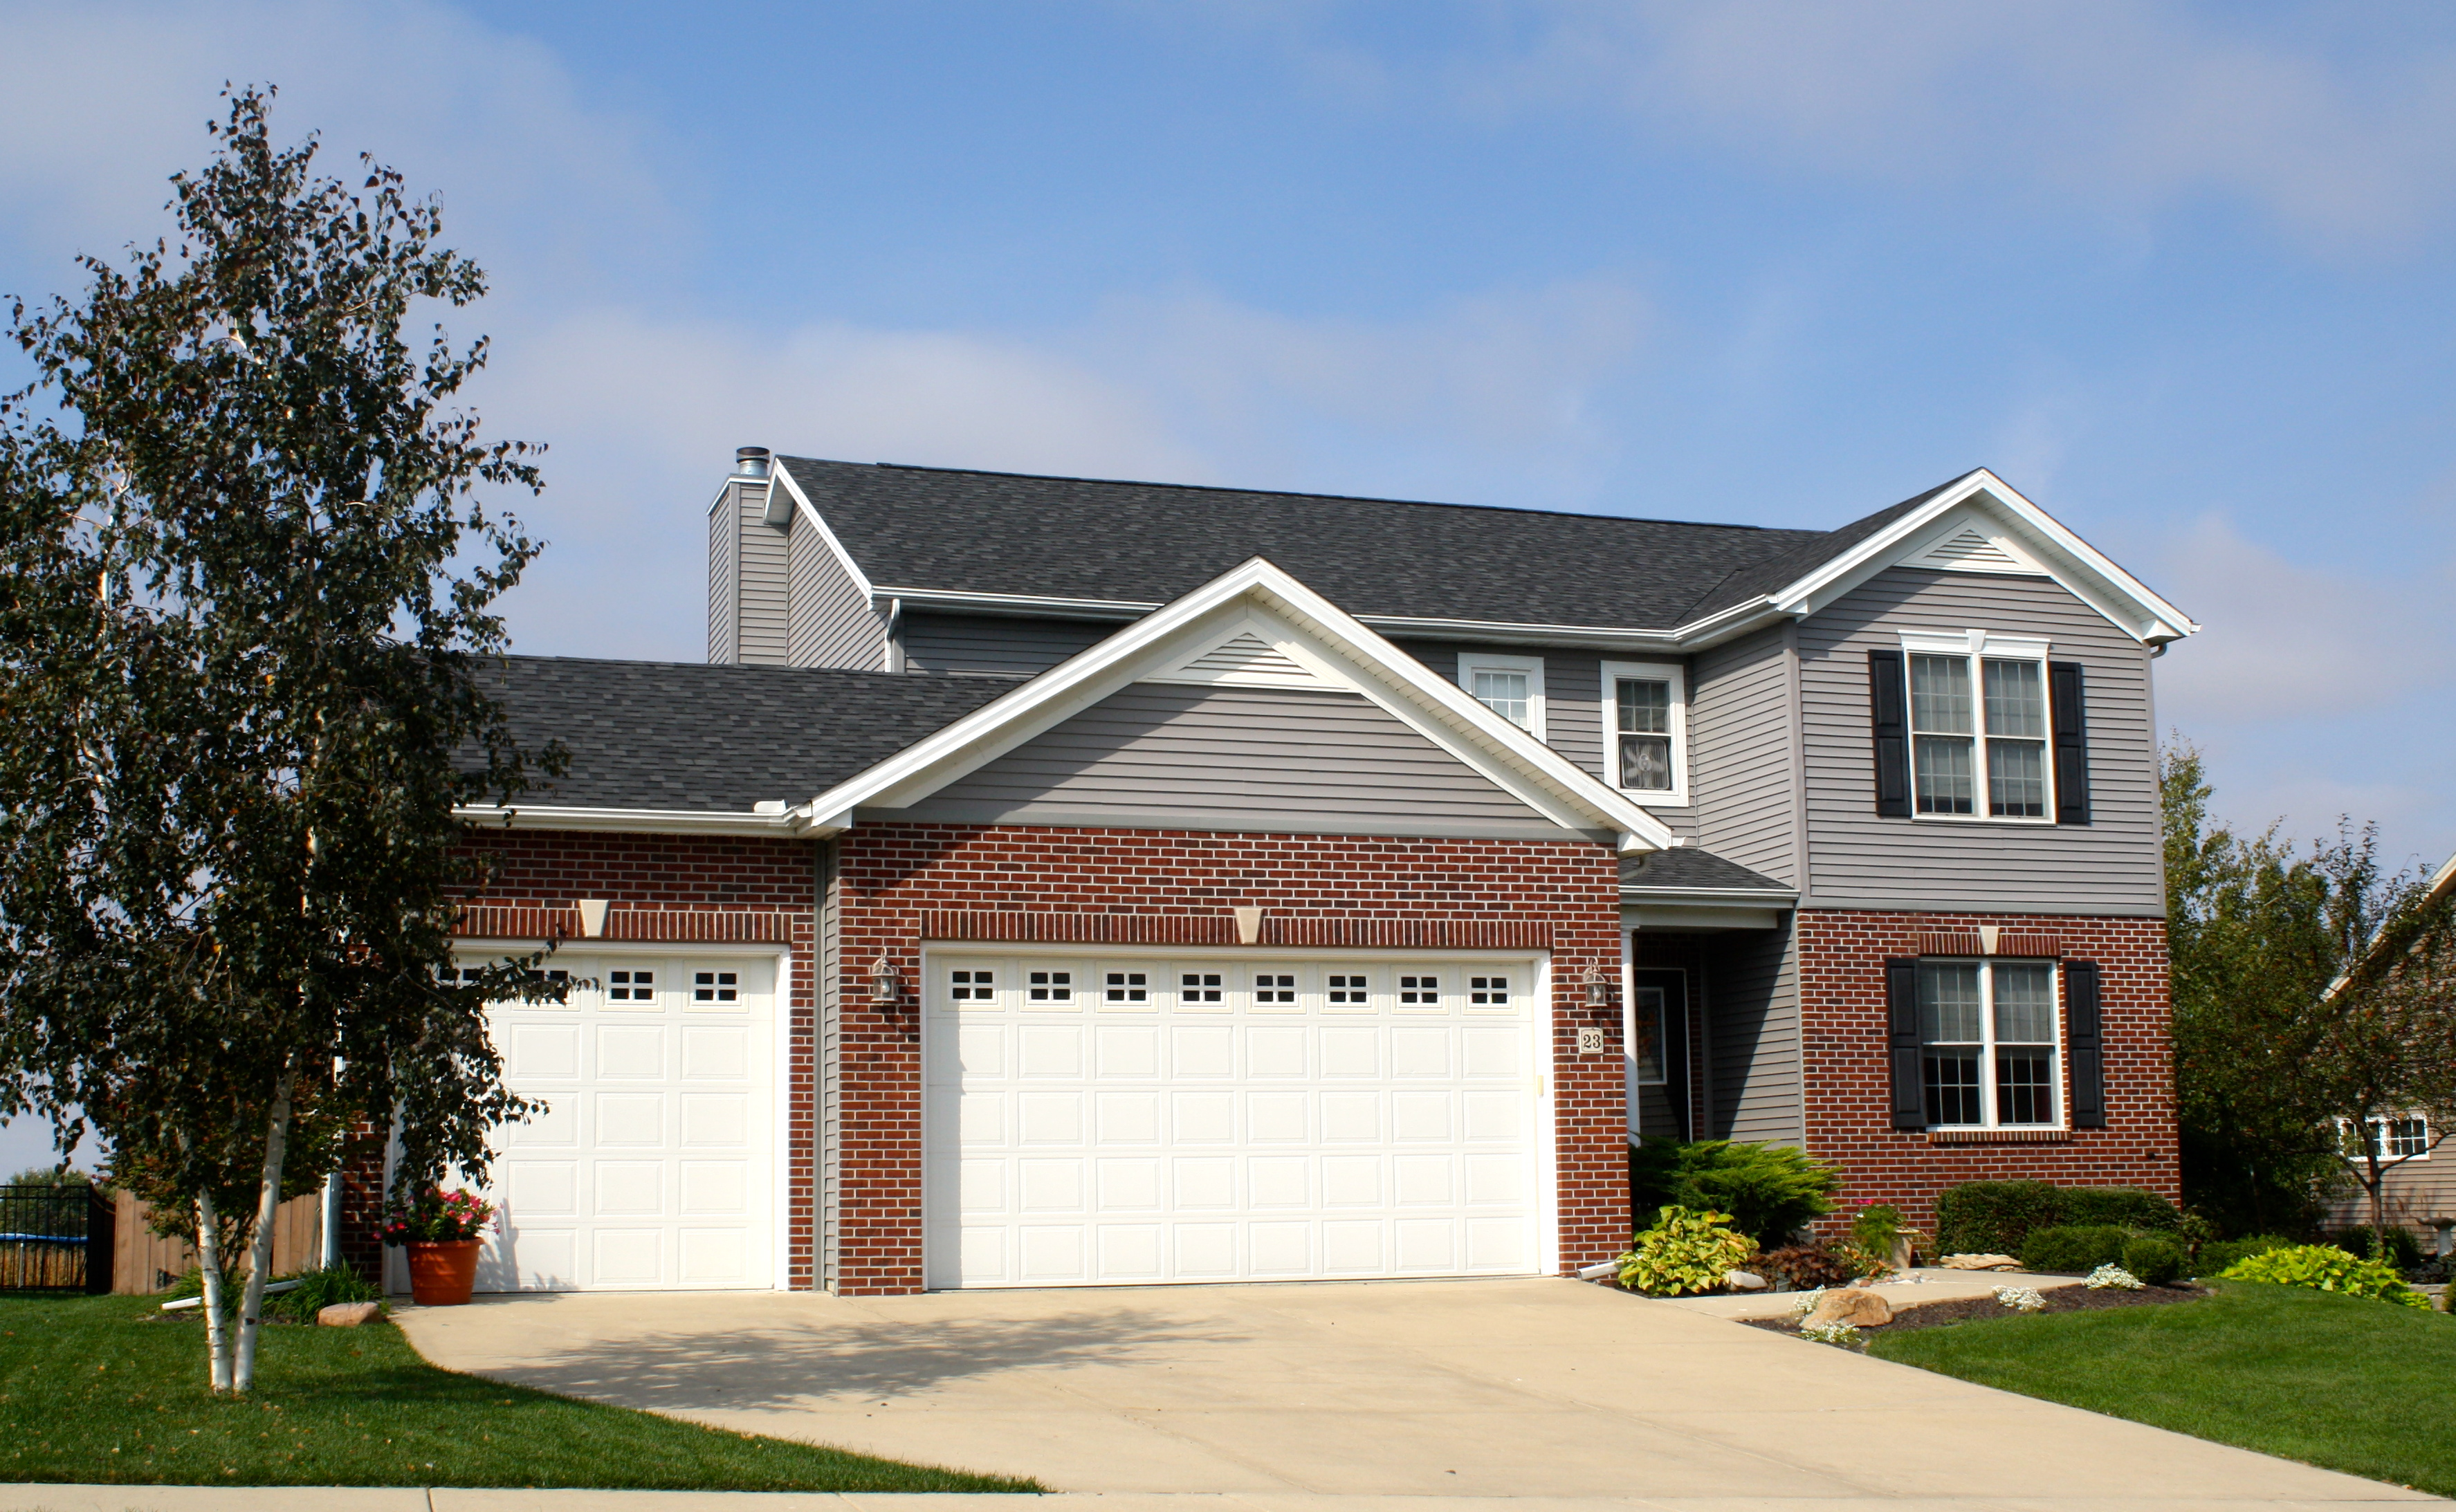 Properly Installed Roof Carlson Exteriors Inc